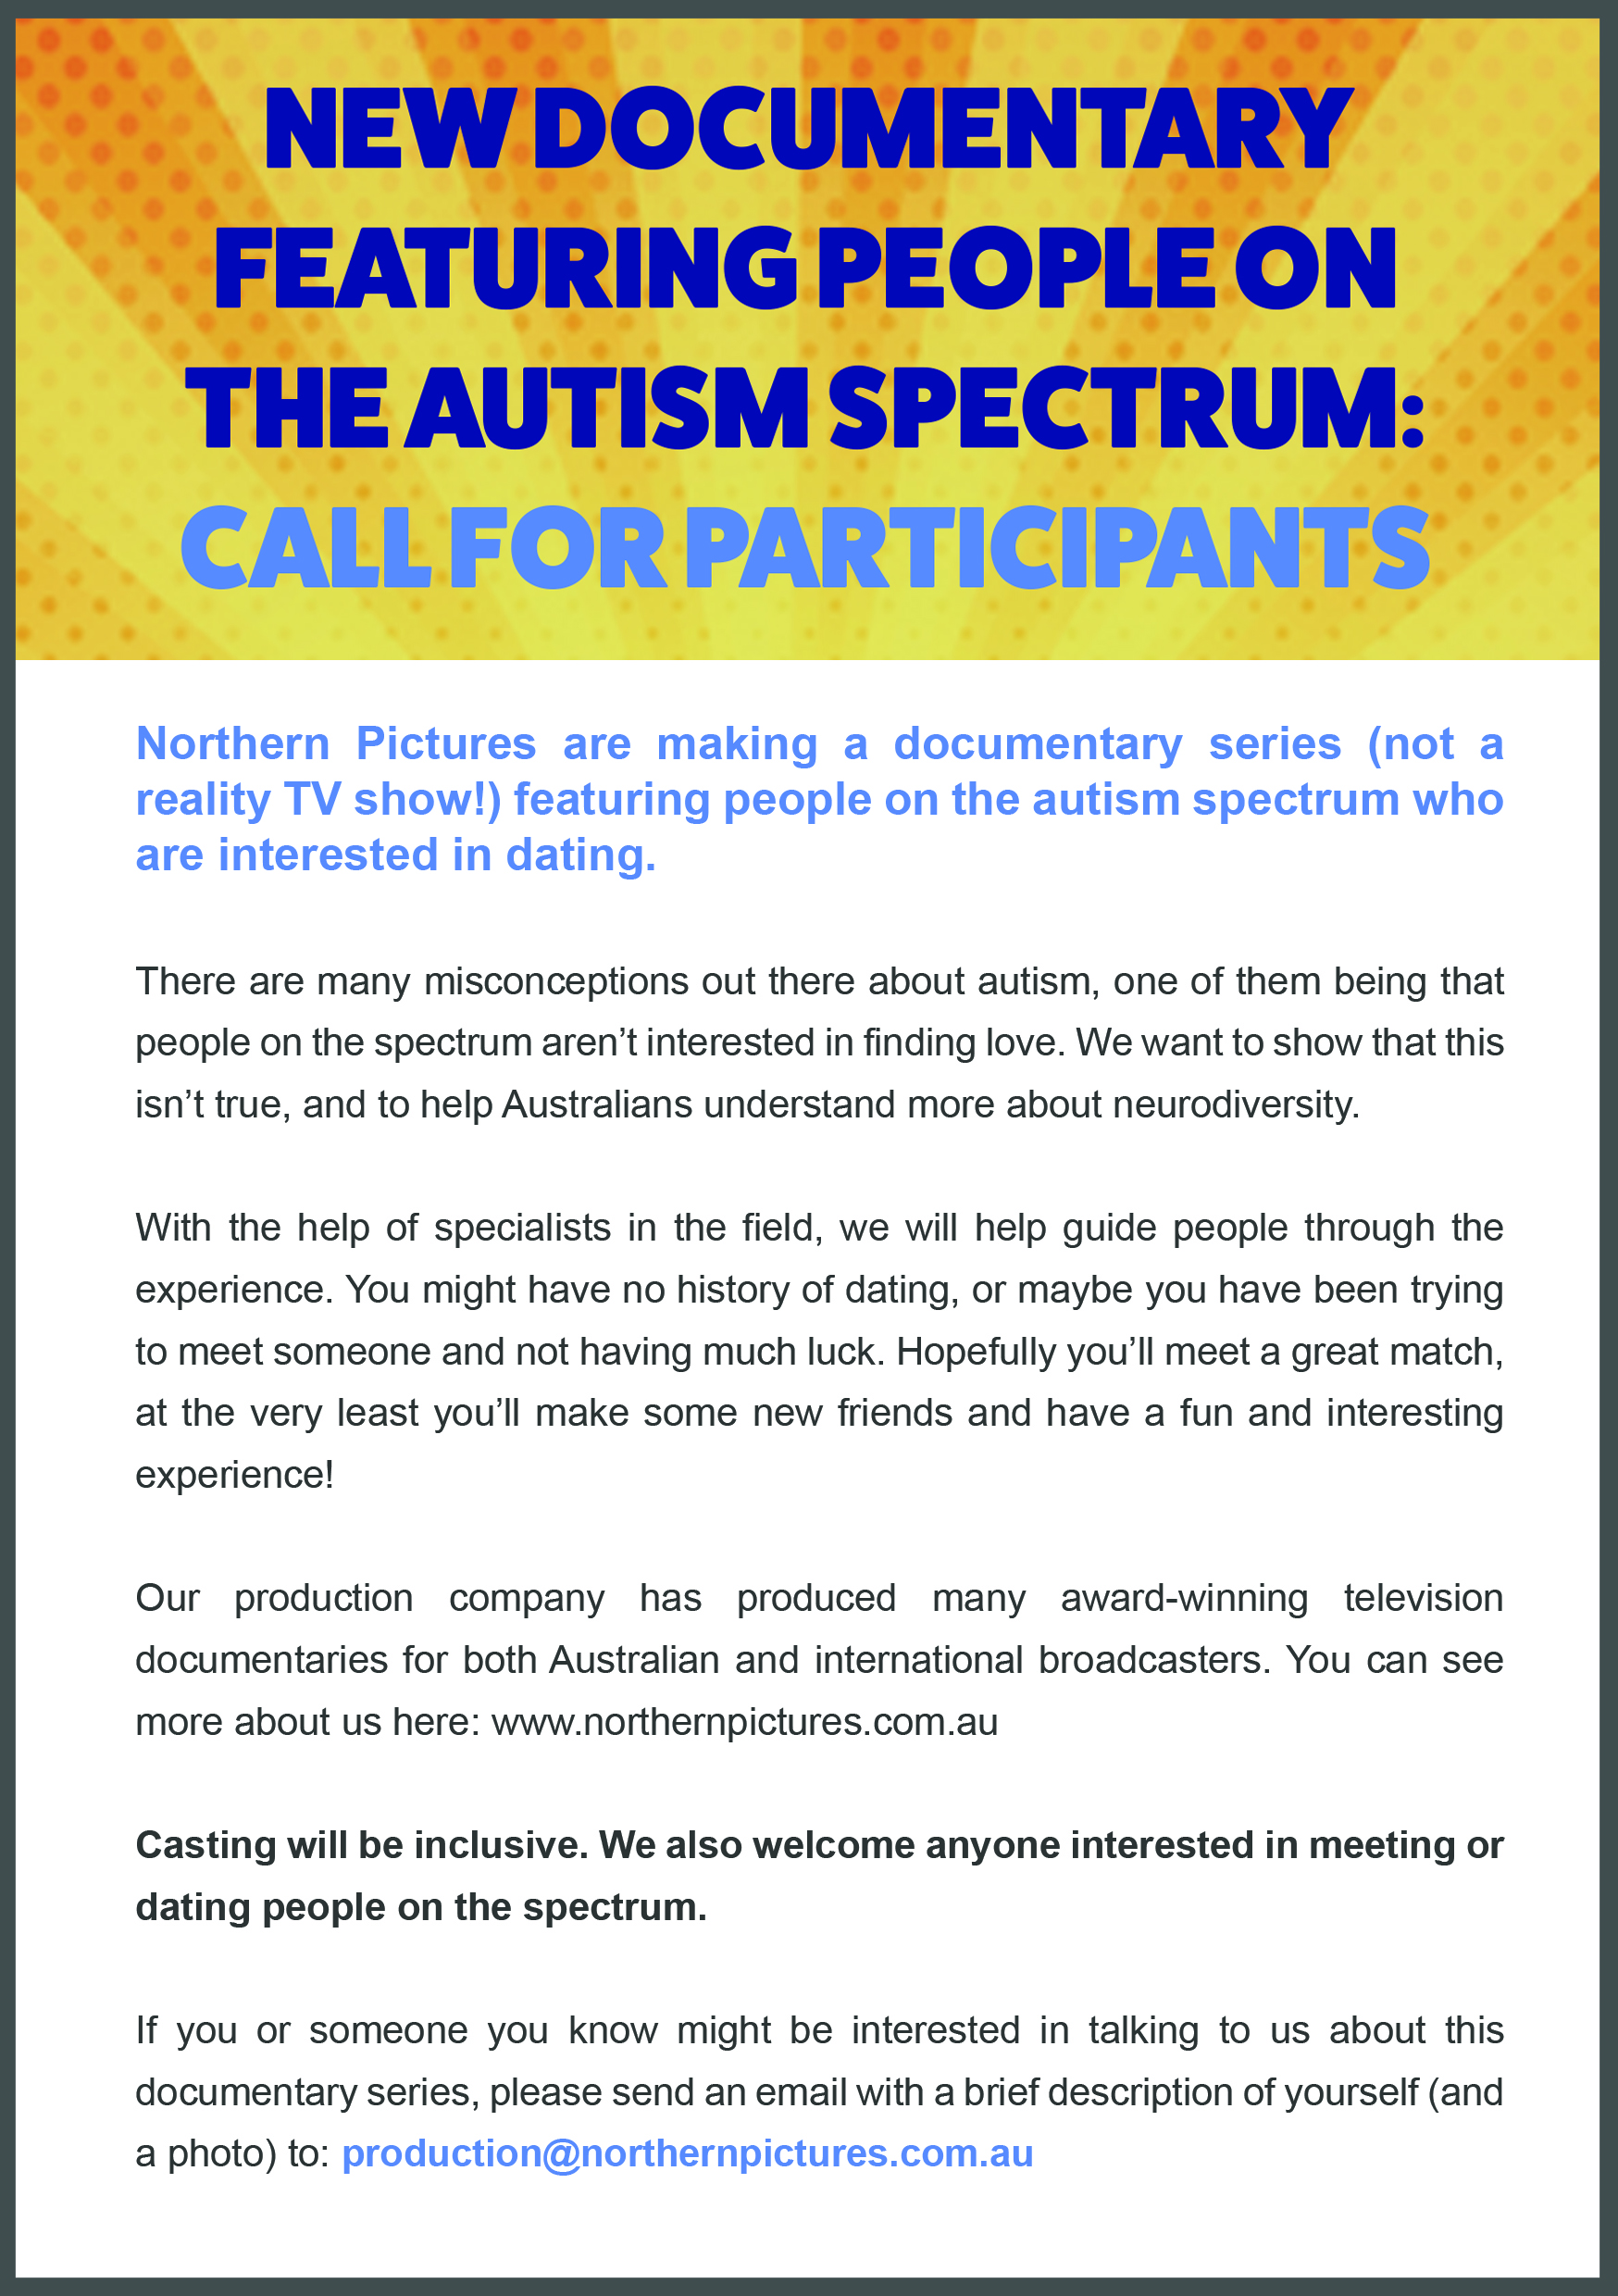 Flyer Advertising for the Documentary Series. There is a heading that says New Documentary Series Featuring People On The Autism Spectrum: Call For Participants. Under heading in blue letters it says. Northern Pictures are making a documentary series (not a reality TV show) featuring people on the autism spectrum who are interested in dating. under that it says. There are many misconceptions out there about autism, one of them being that people on the spectrum aren't interested in finding love. We want to how that this isn't true, and to help Australian's understand more about neurodiversity. With the help of specialists in the field, we will help guide people through the experience. You might have no history in dating, or maybe you have been trying to meet someone and not having much luck. Hopefully you'll meet a great match, at the very least you'll make some new friends and have a fun and interesting experience! our production company has produced many award-winning television documentaries for both Australian and international broadcasters. You can learn more about us here: www.northernpictures.com.au   underneath it says in bold writing. Casting will be inclusive. we also welcome anyone interested in meeting or dating people on the spectrum.  underneath that it says. If you or someone you know might be interested in talking to us about this documentary series, please send an email with a brief description of yourself and a photo to: production@northernpictures.com.au